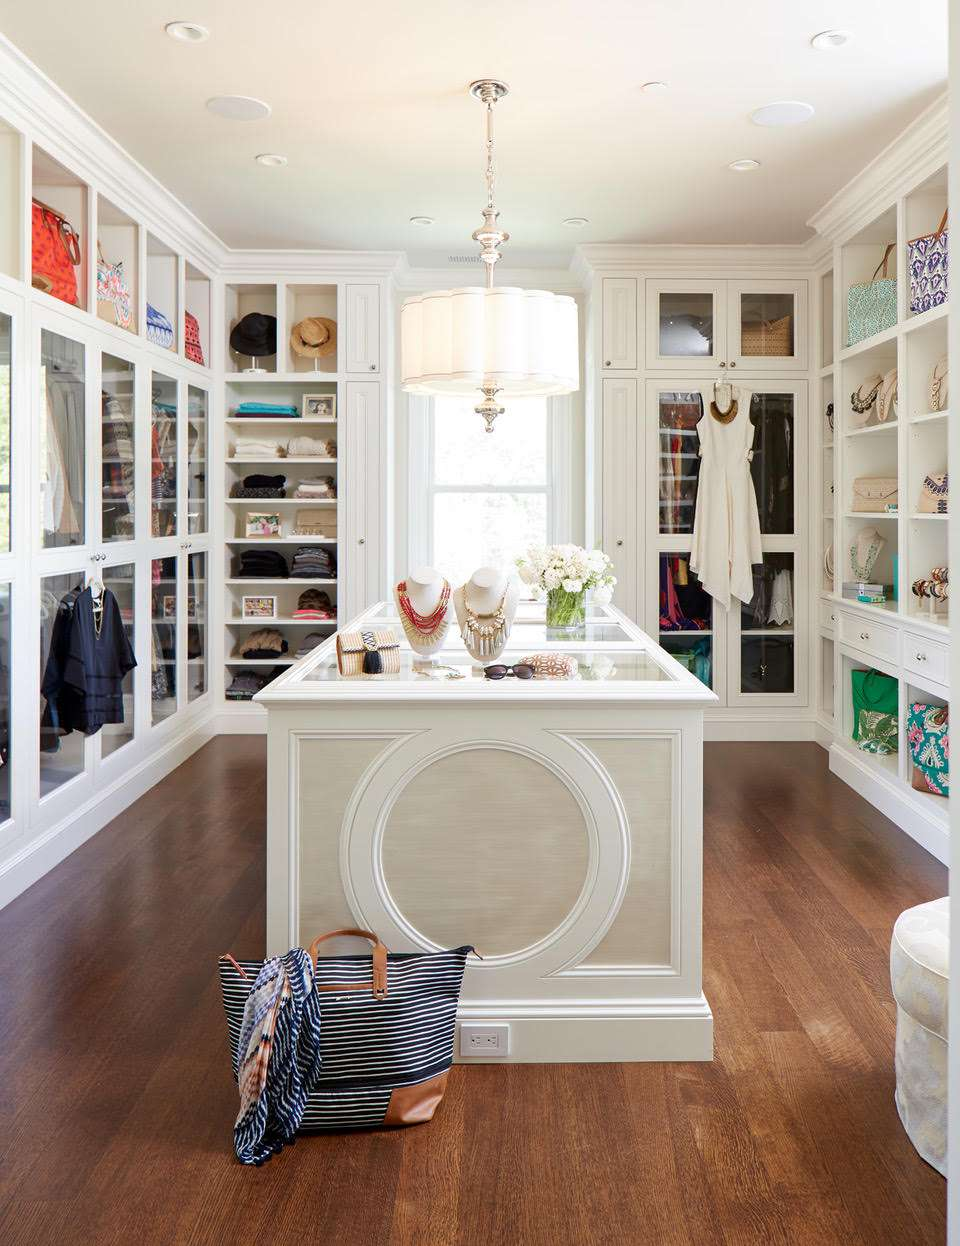 Large closet with jewelry on display.